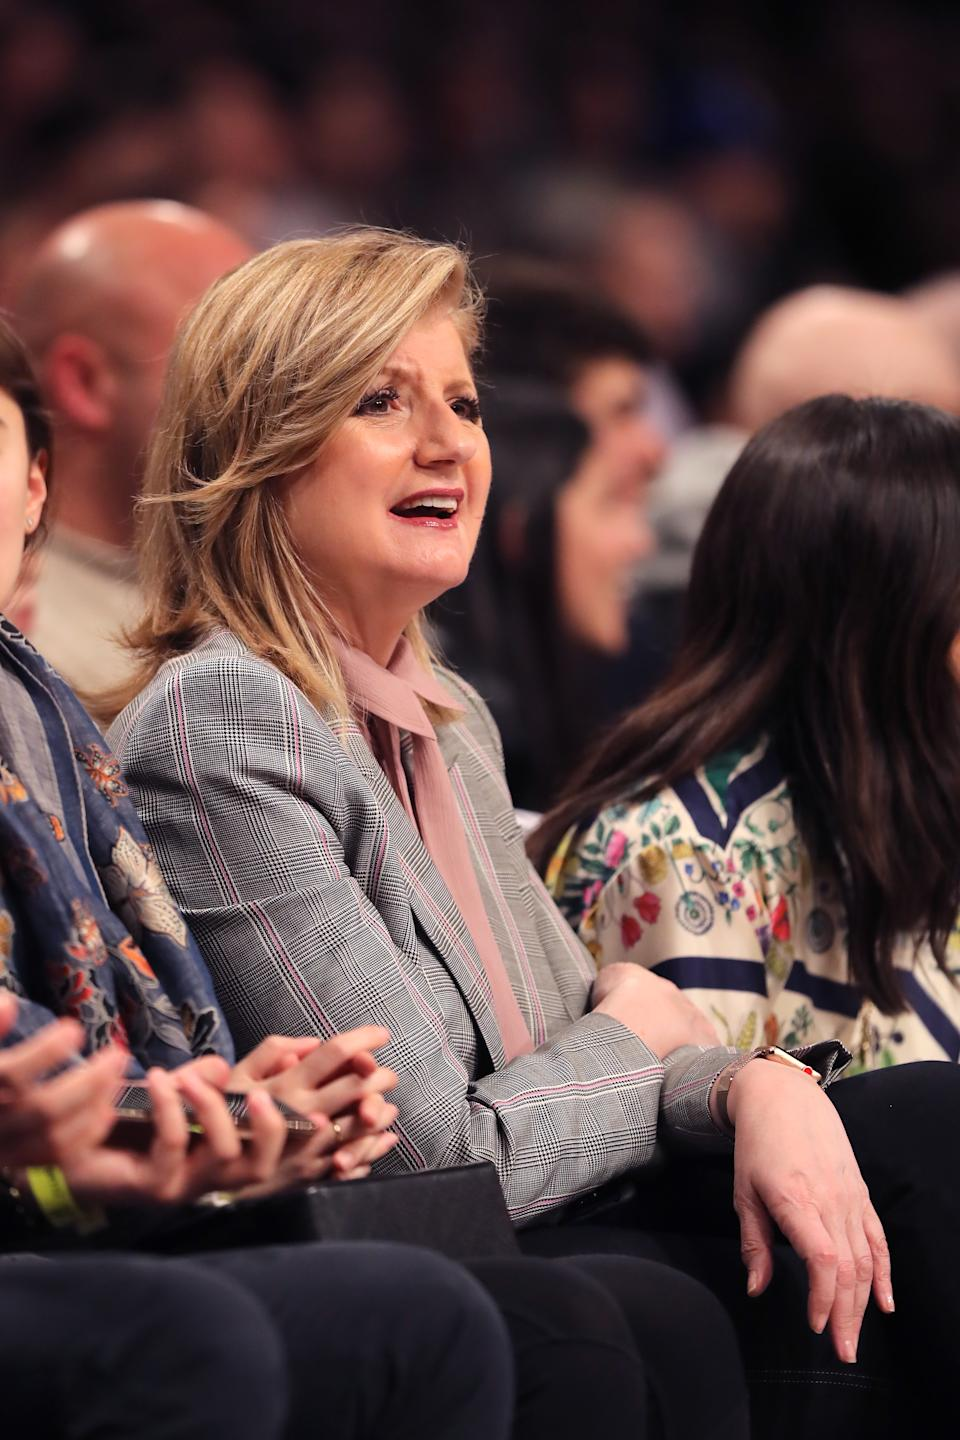 Arianna Huffington attends game three of Round One of the 2019 NBA Playoffs between the Brooklyn Nets and the Philadelphia 76ers at Barclays Center on April 18, 2019 in the Brooklyn borough of New York City. (Photo by Elsa/Getty Images)